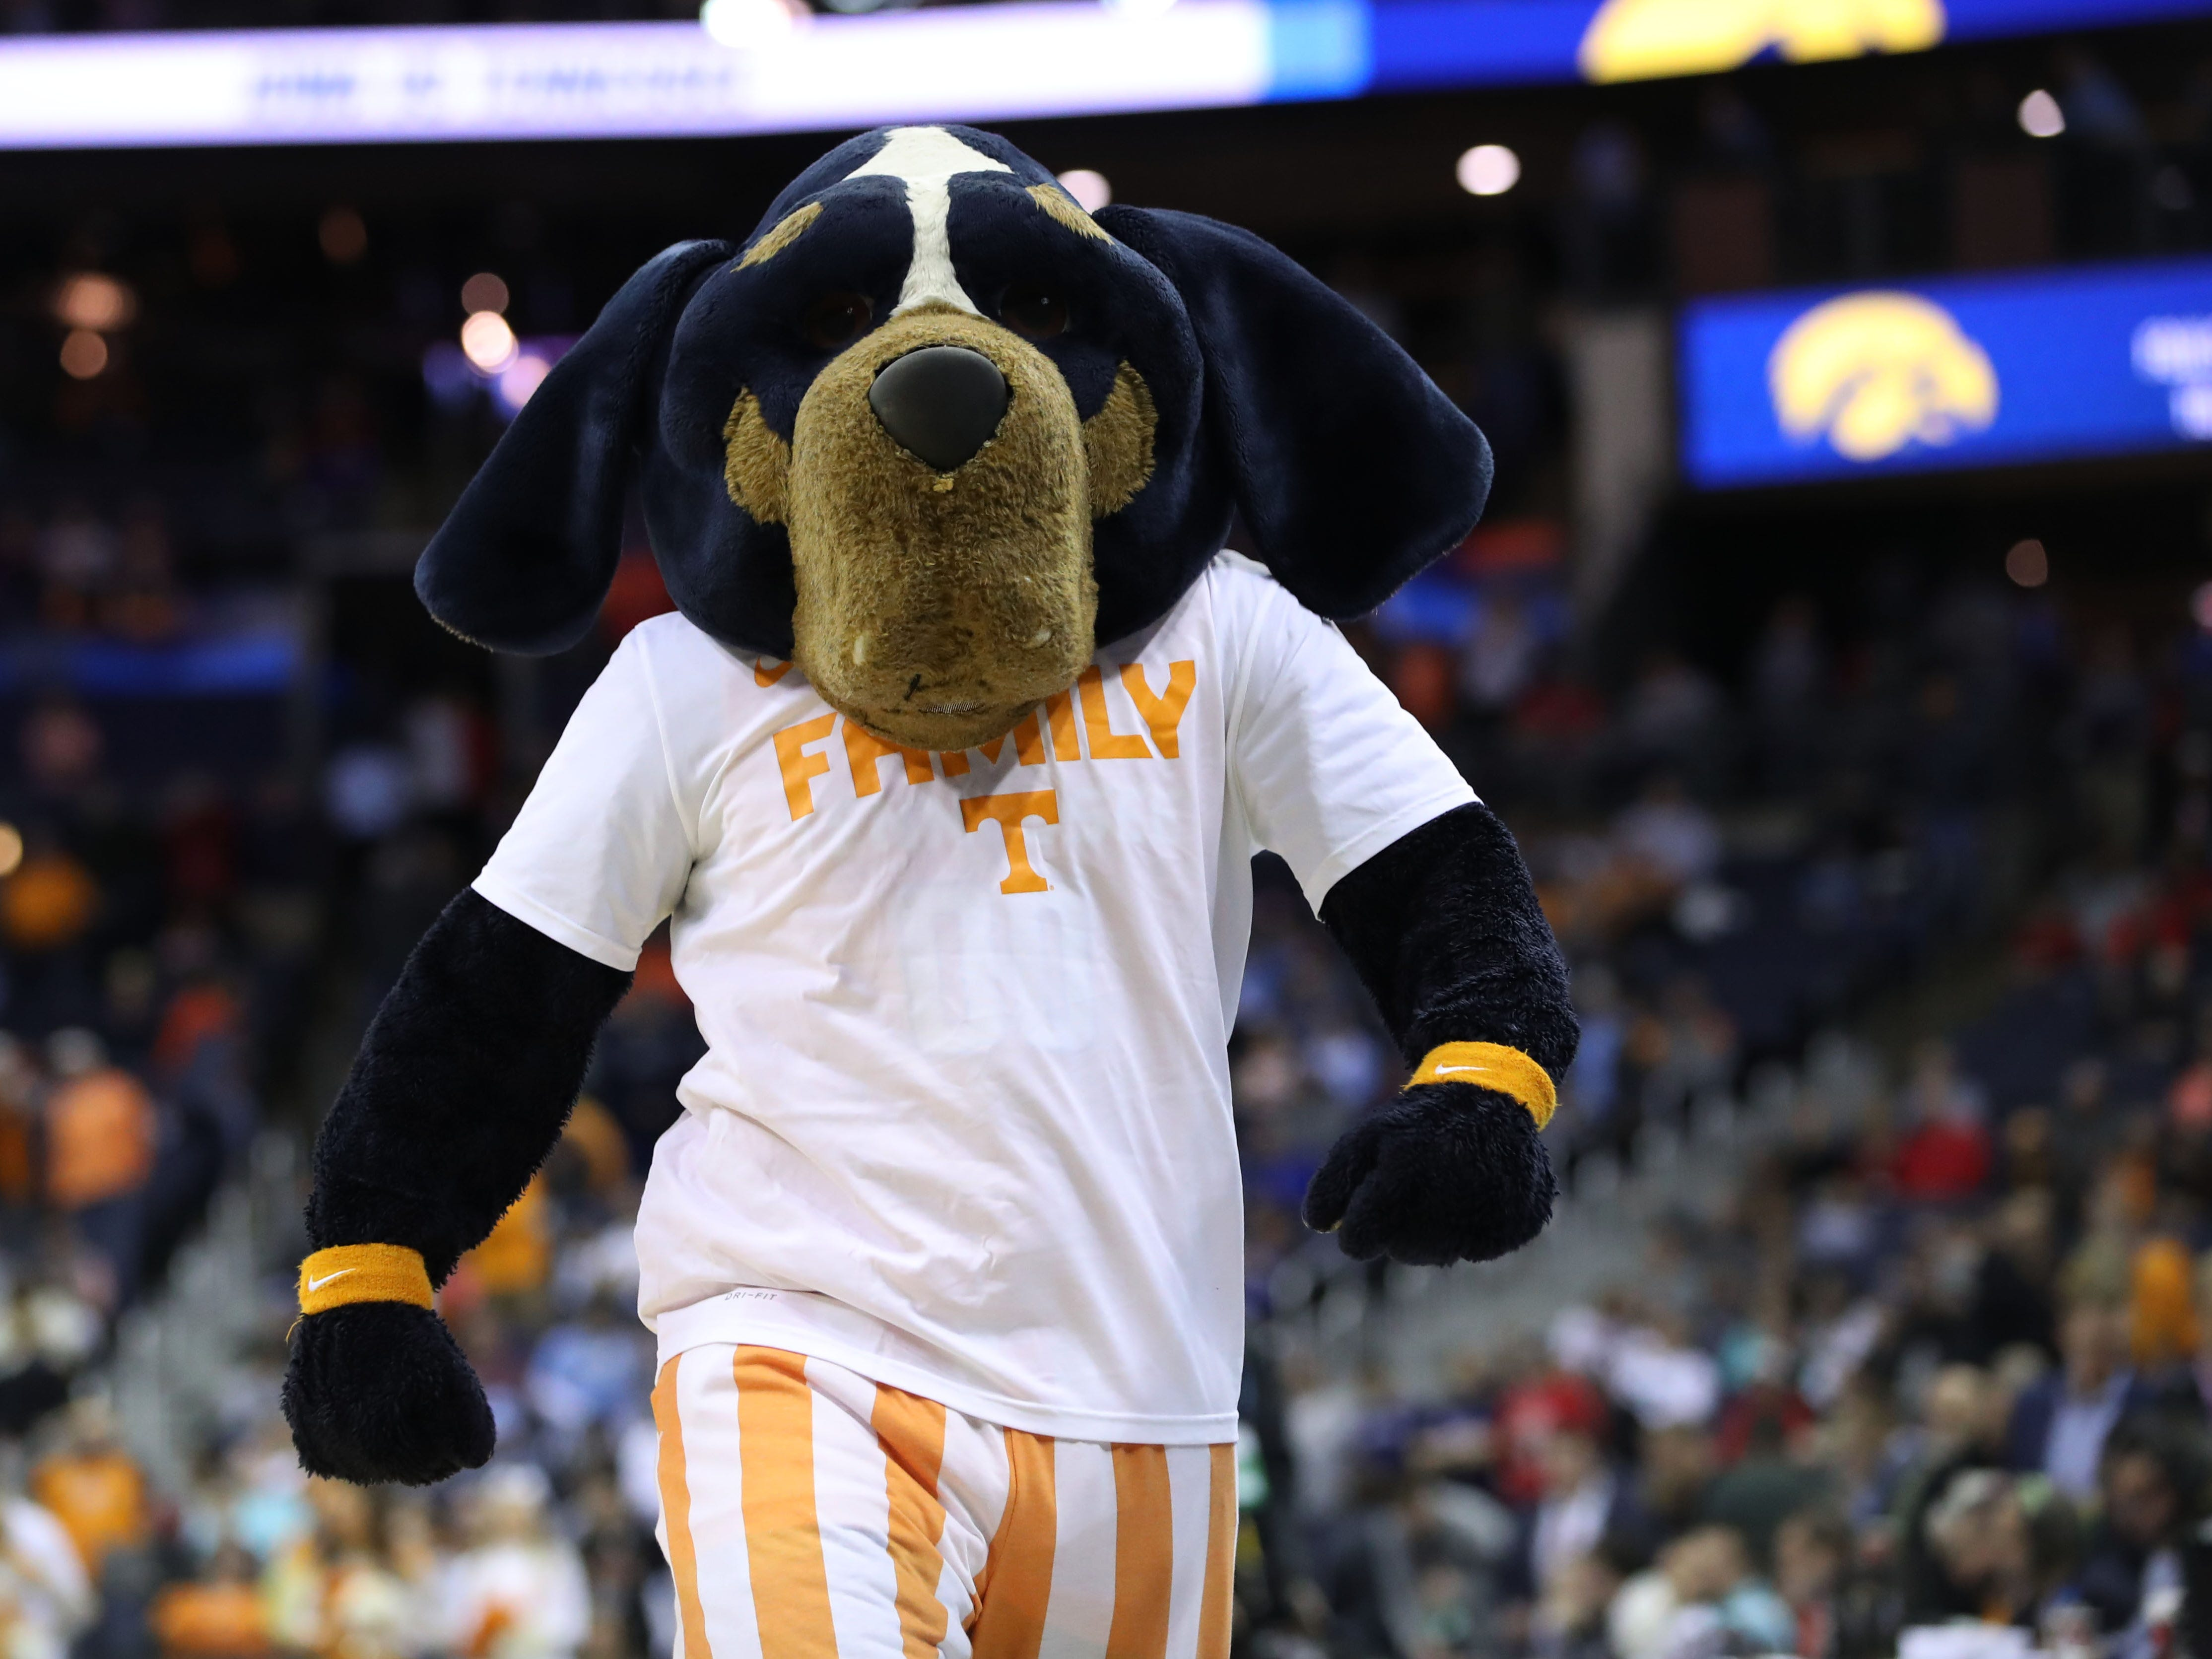 Round of 32: Tennessee Volunteers mascot Smokey performs before the game against the Iowa Hawkeyes.